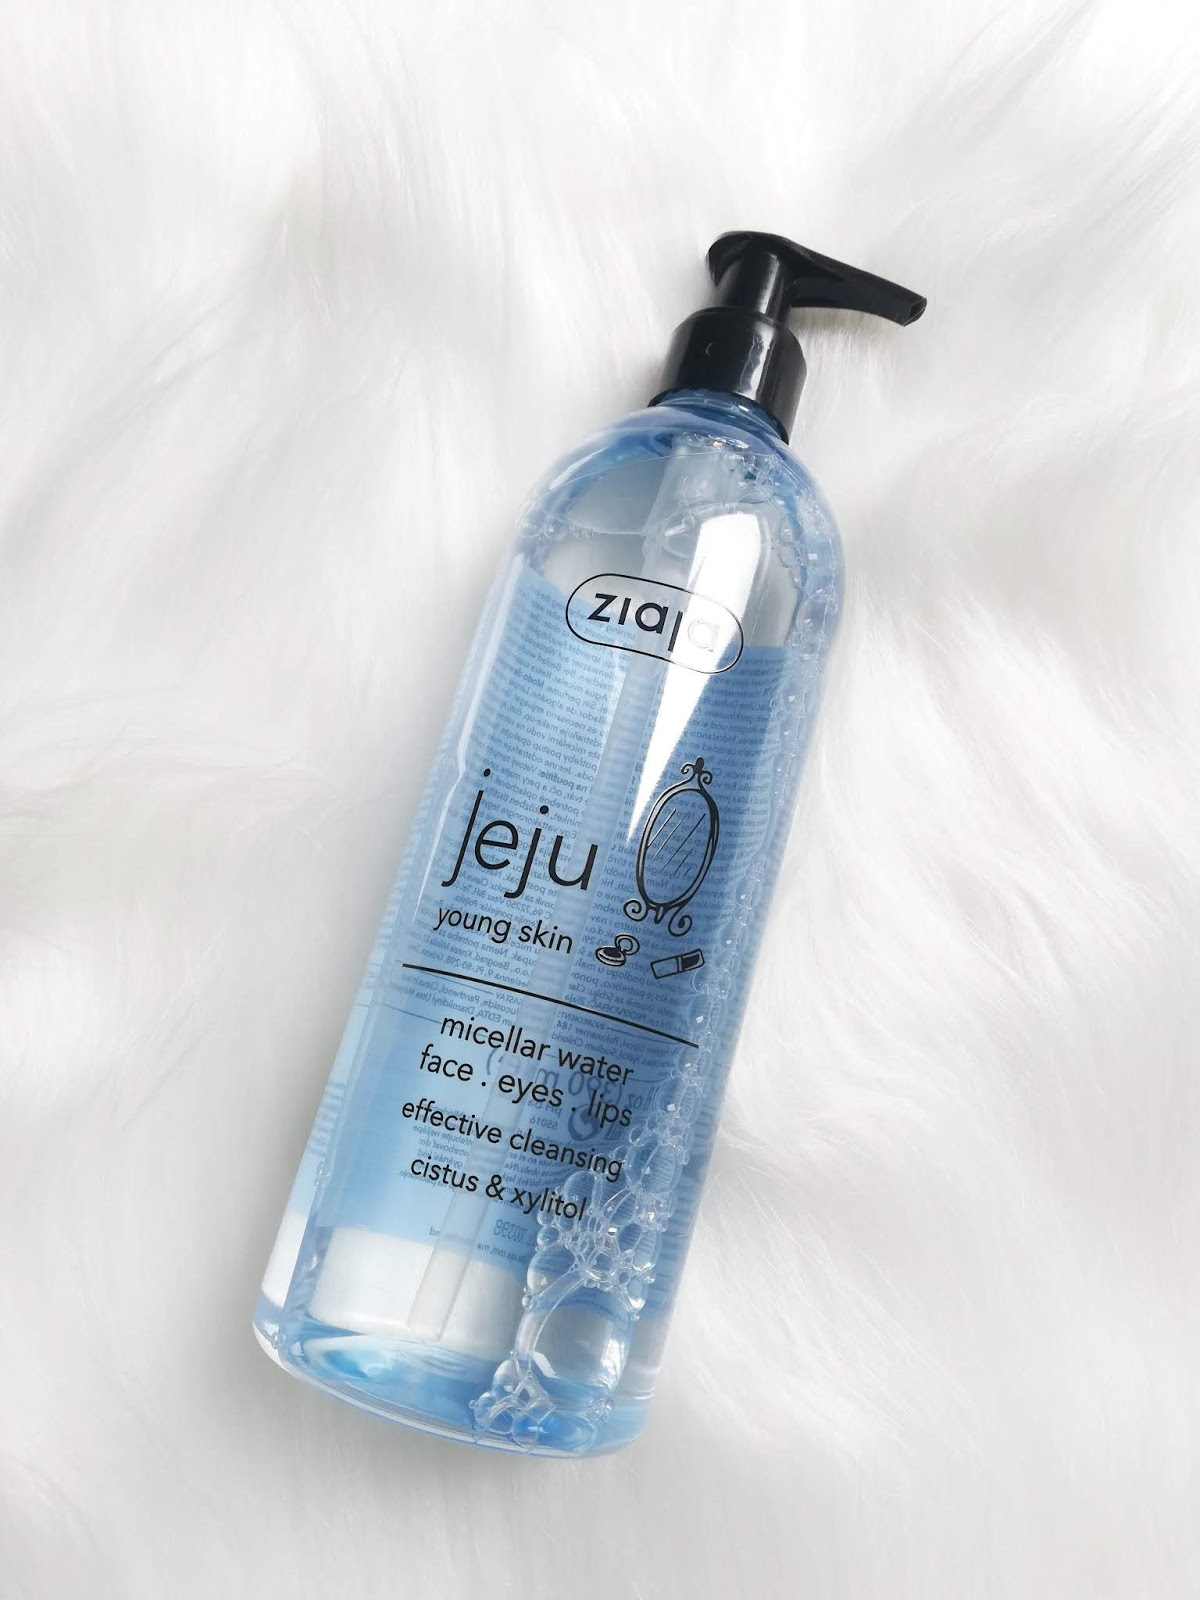 micellar water for sensitive skin